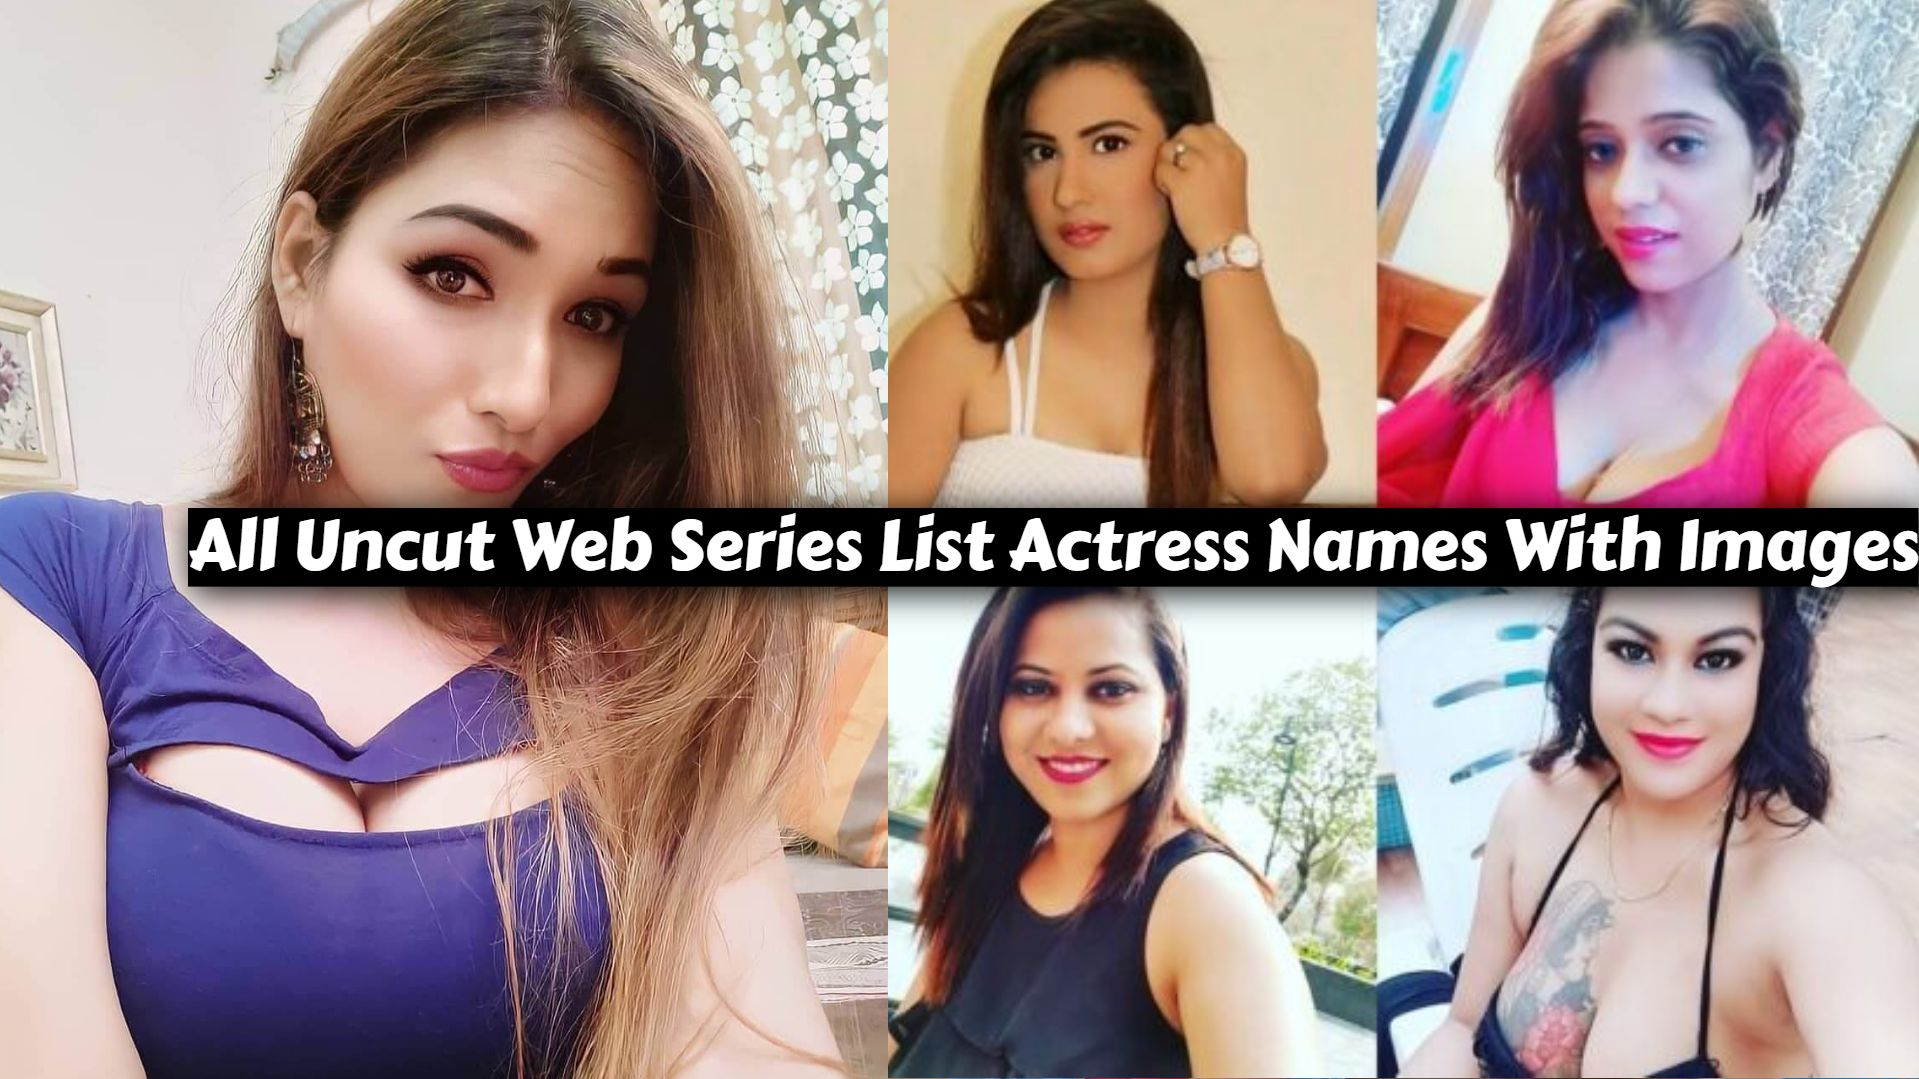 All Uncut Web Series List Actress Names With Images, Complete Cast